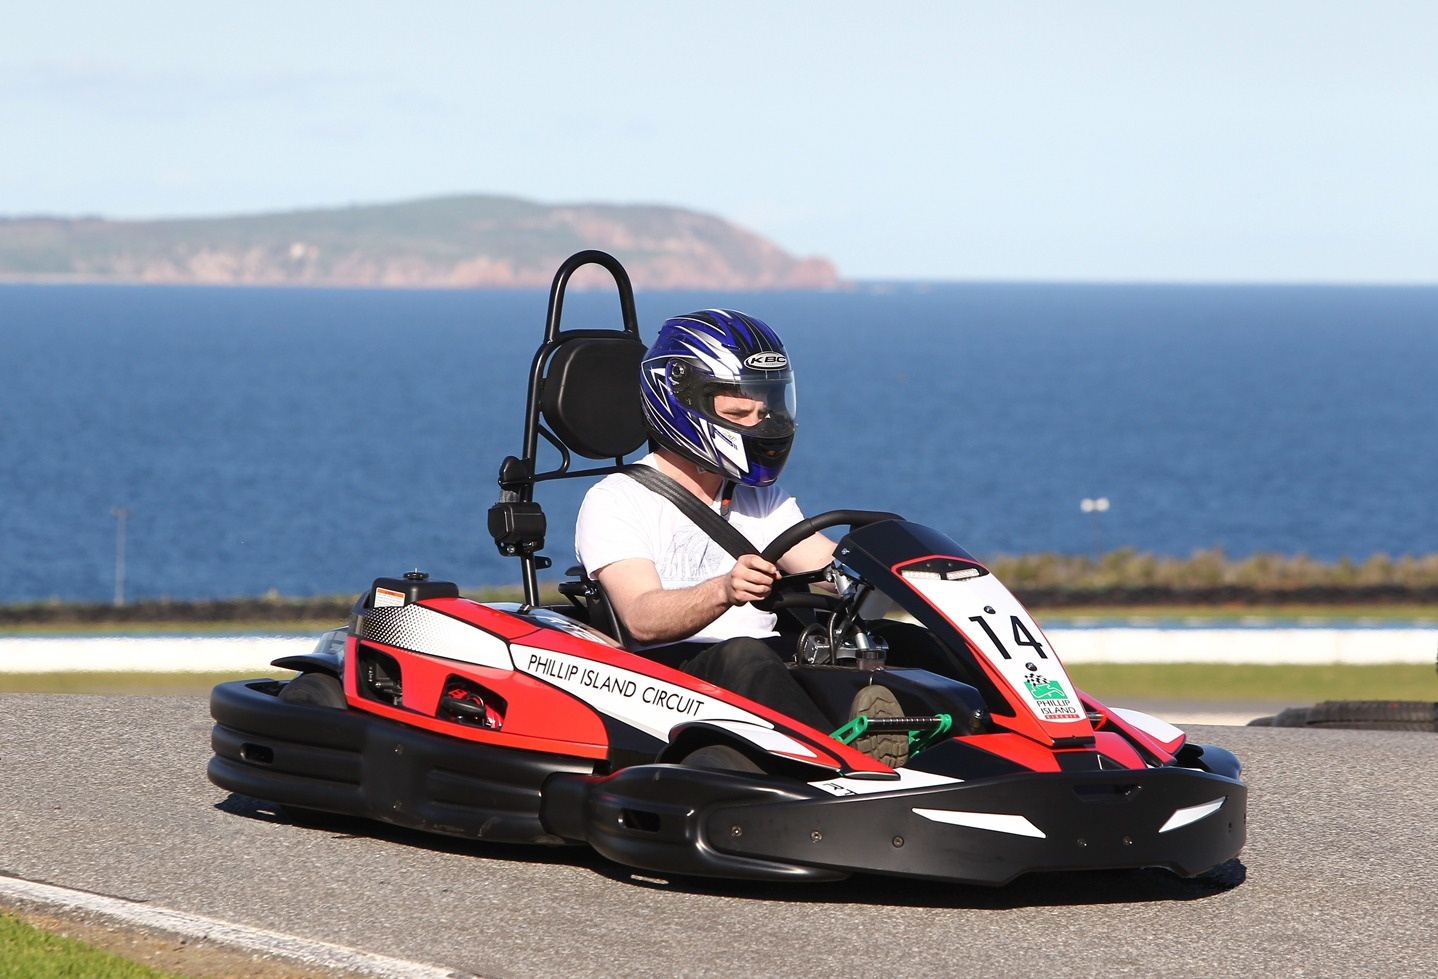 Phillip Island Grand Prix Circuit - ACT Tourism